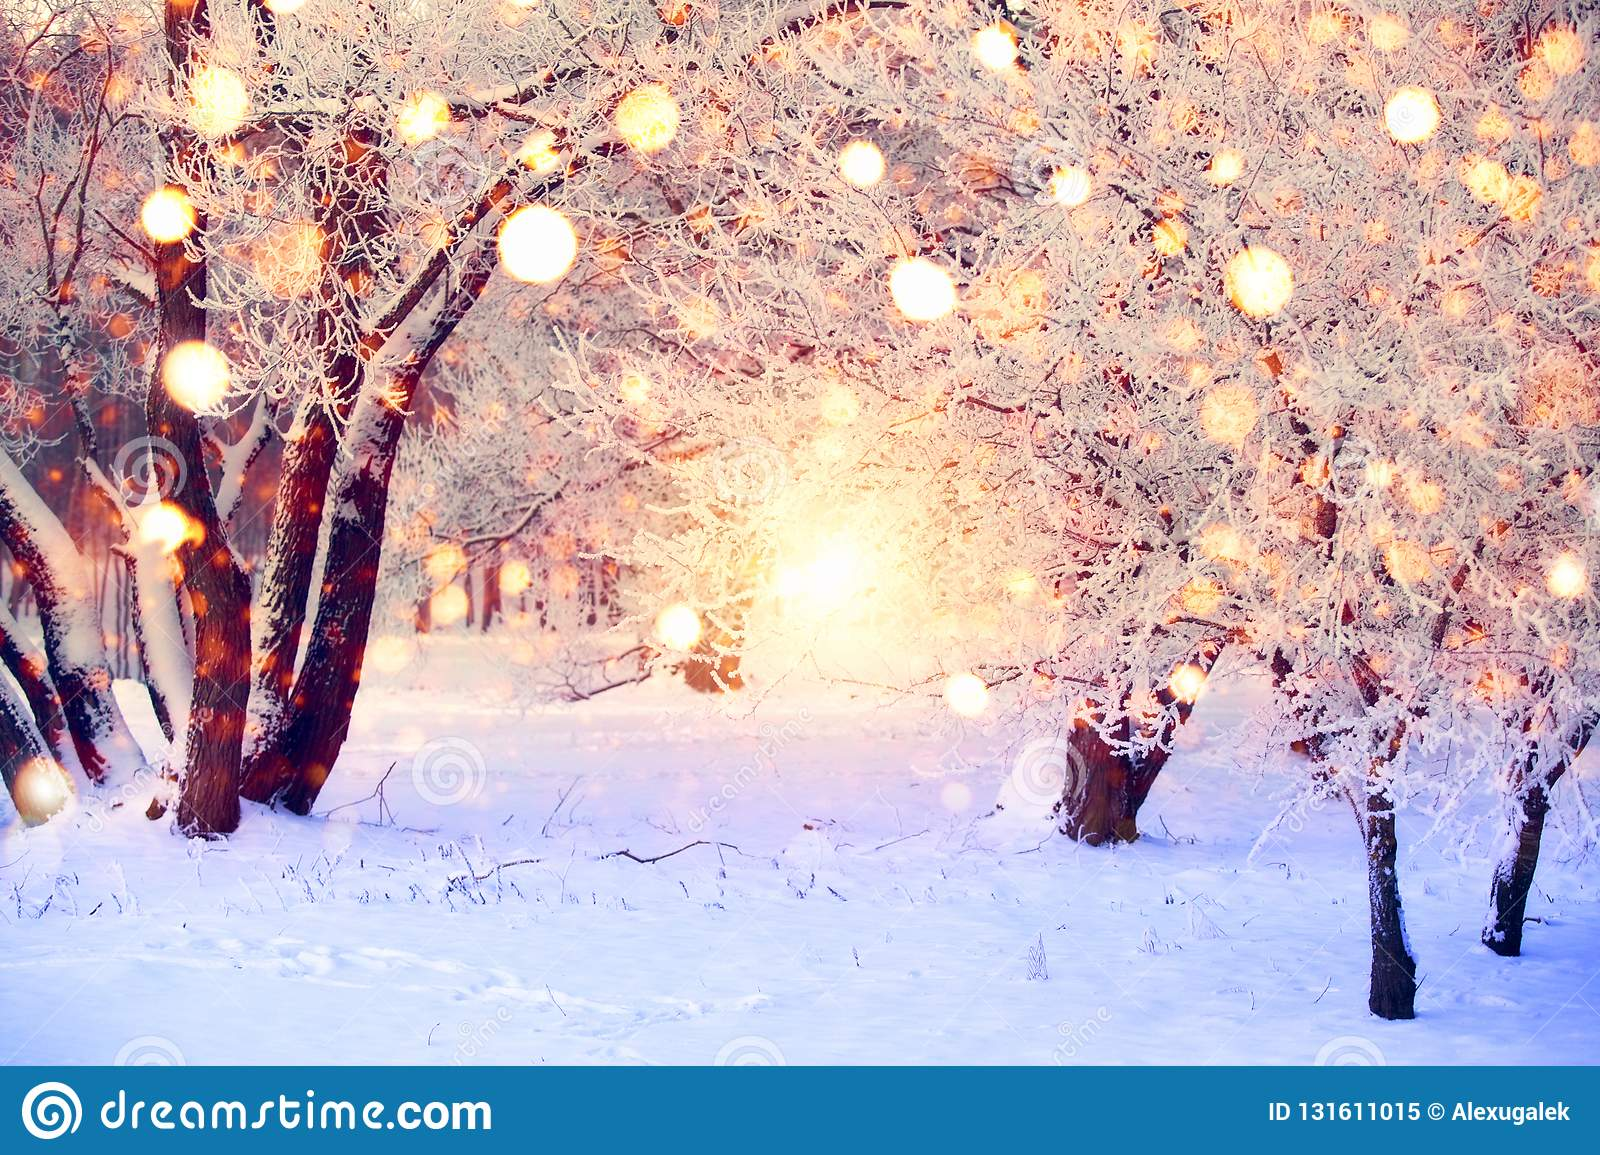 Beautiful Christmas Pictures.Winter Forest With Colorful Snowflakes Snow Covered Trees